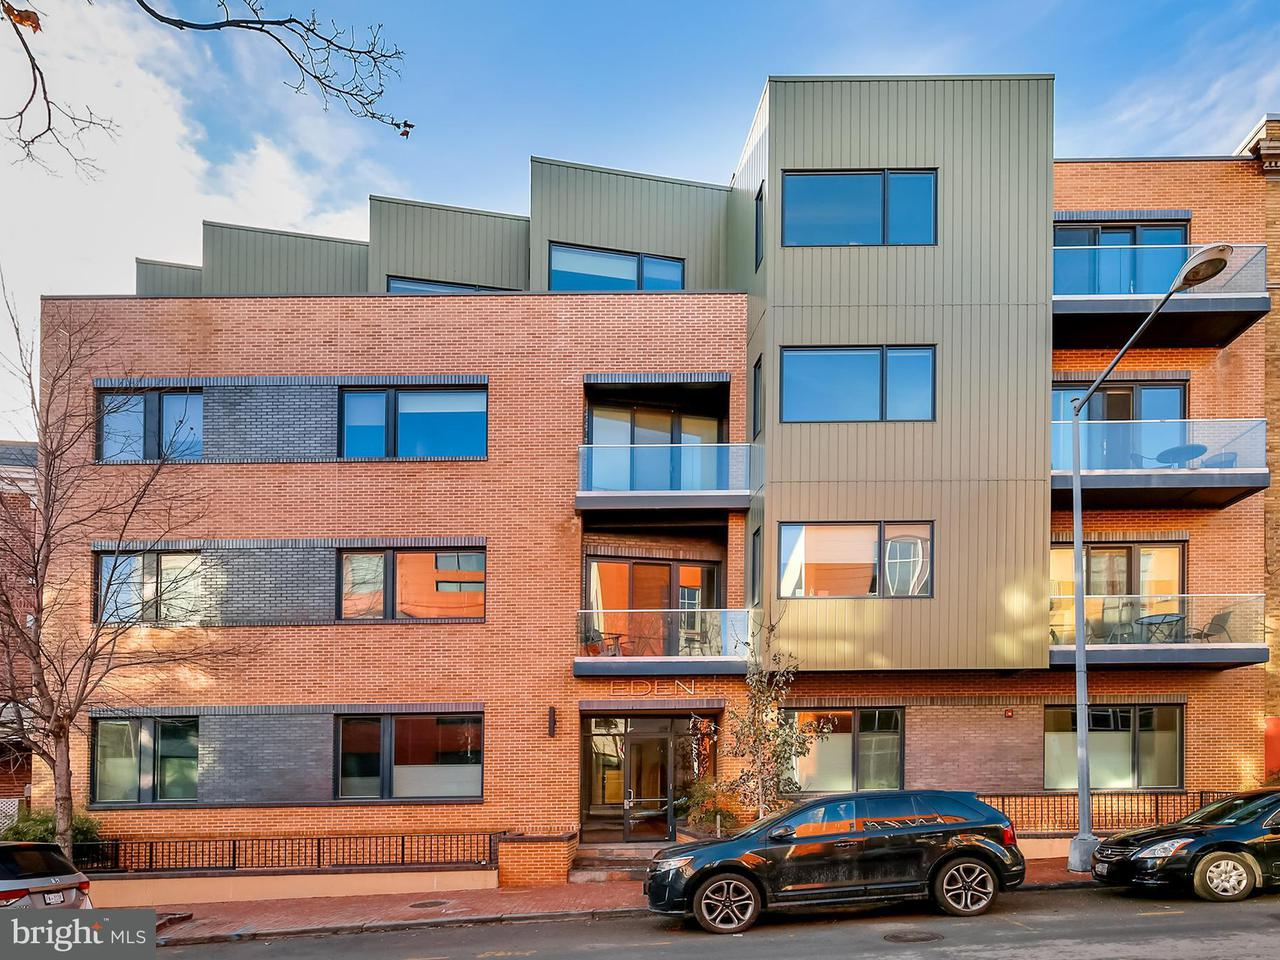 Condominium for Sale at 2360 Champlain St Nw #4.3 2360 Champlain St Nw #4.3 Washington, District Of Columbia 20009 United States